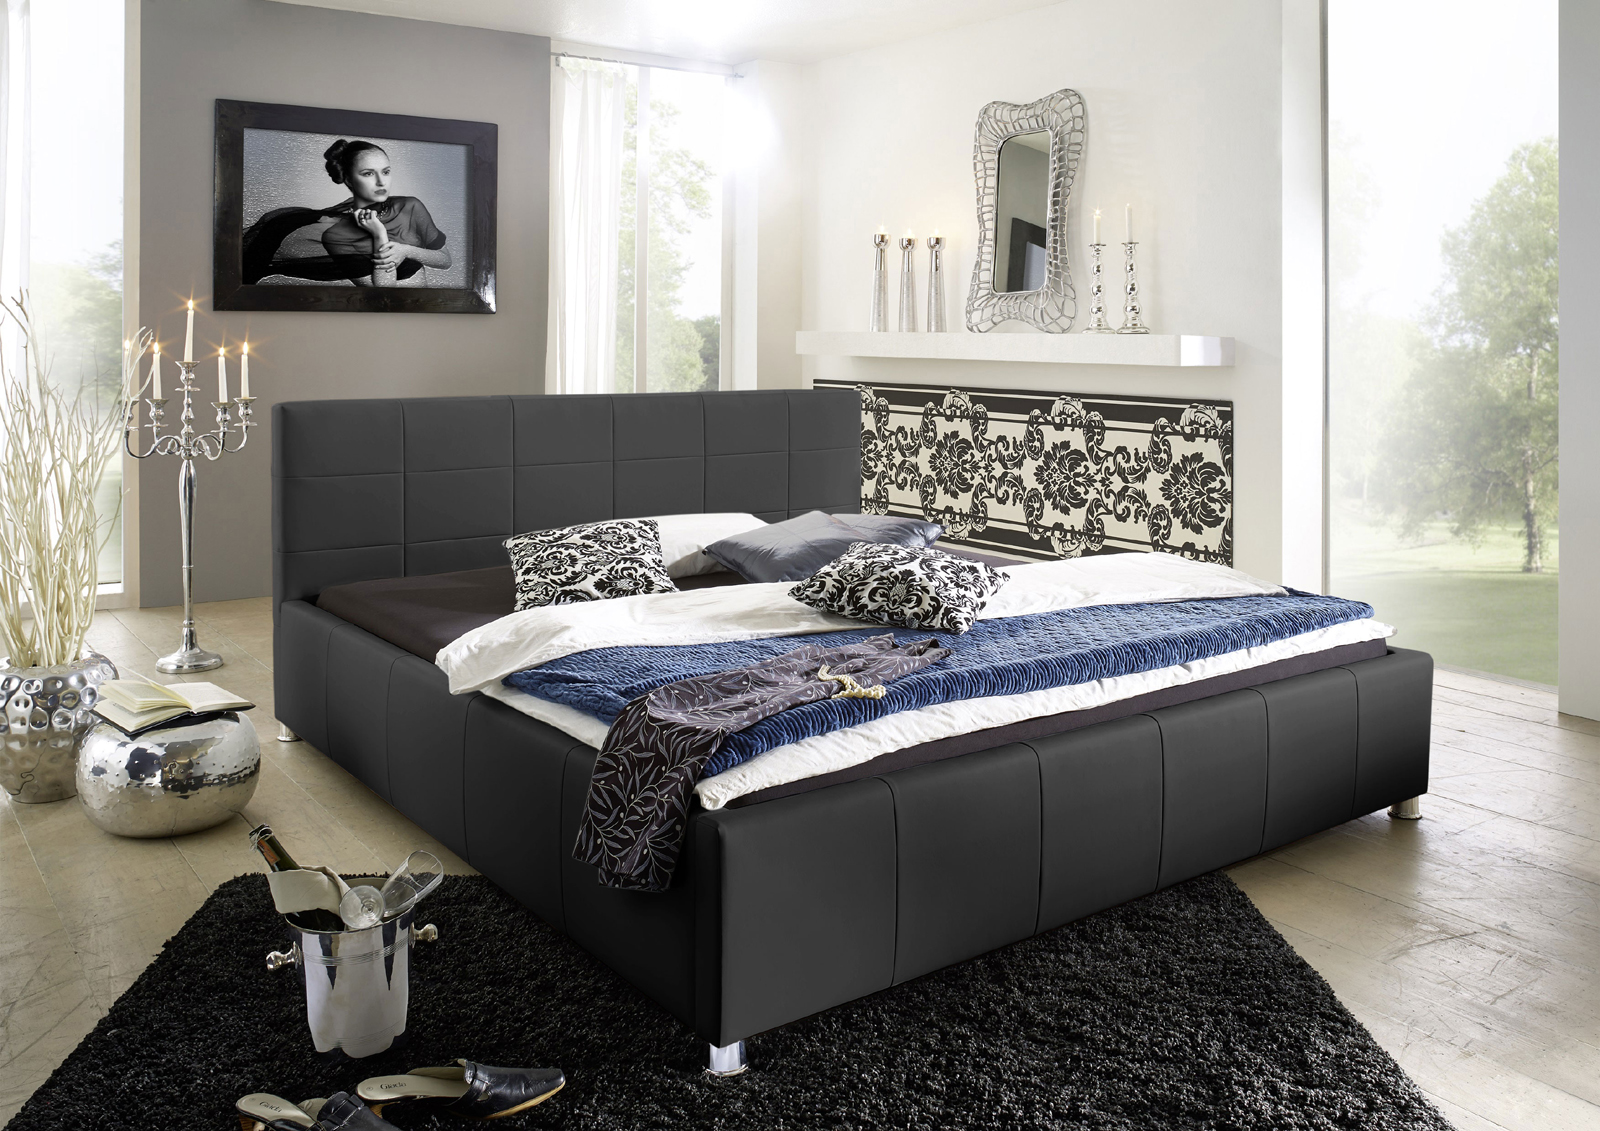 sam design bett 160 x 200 cm schwarz kira g nstig. Black Bedroom Furniture Sets. Home Design Ideas